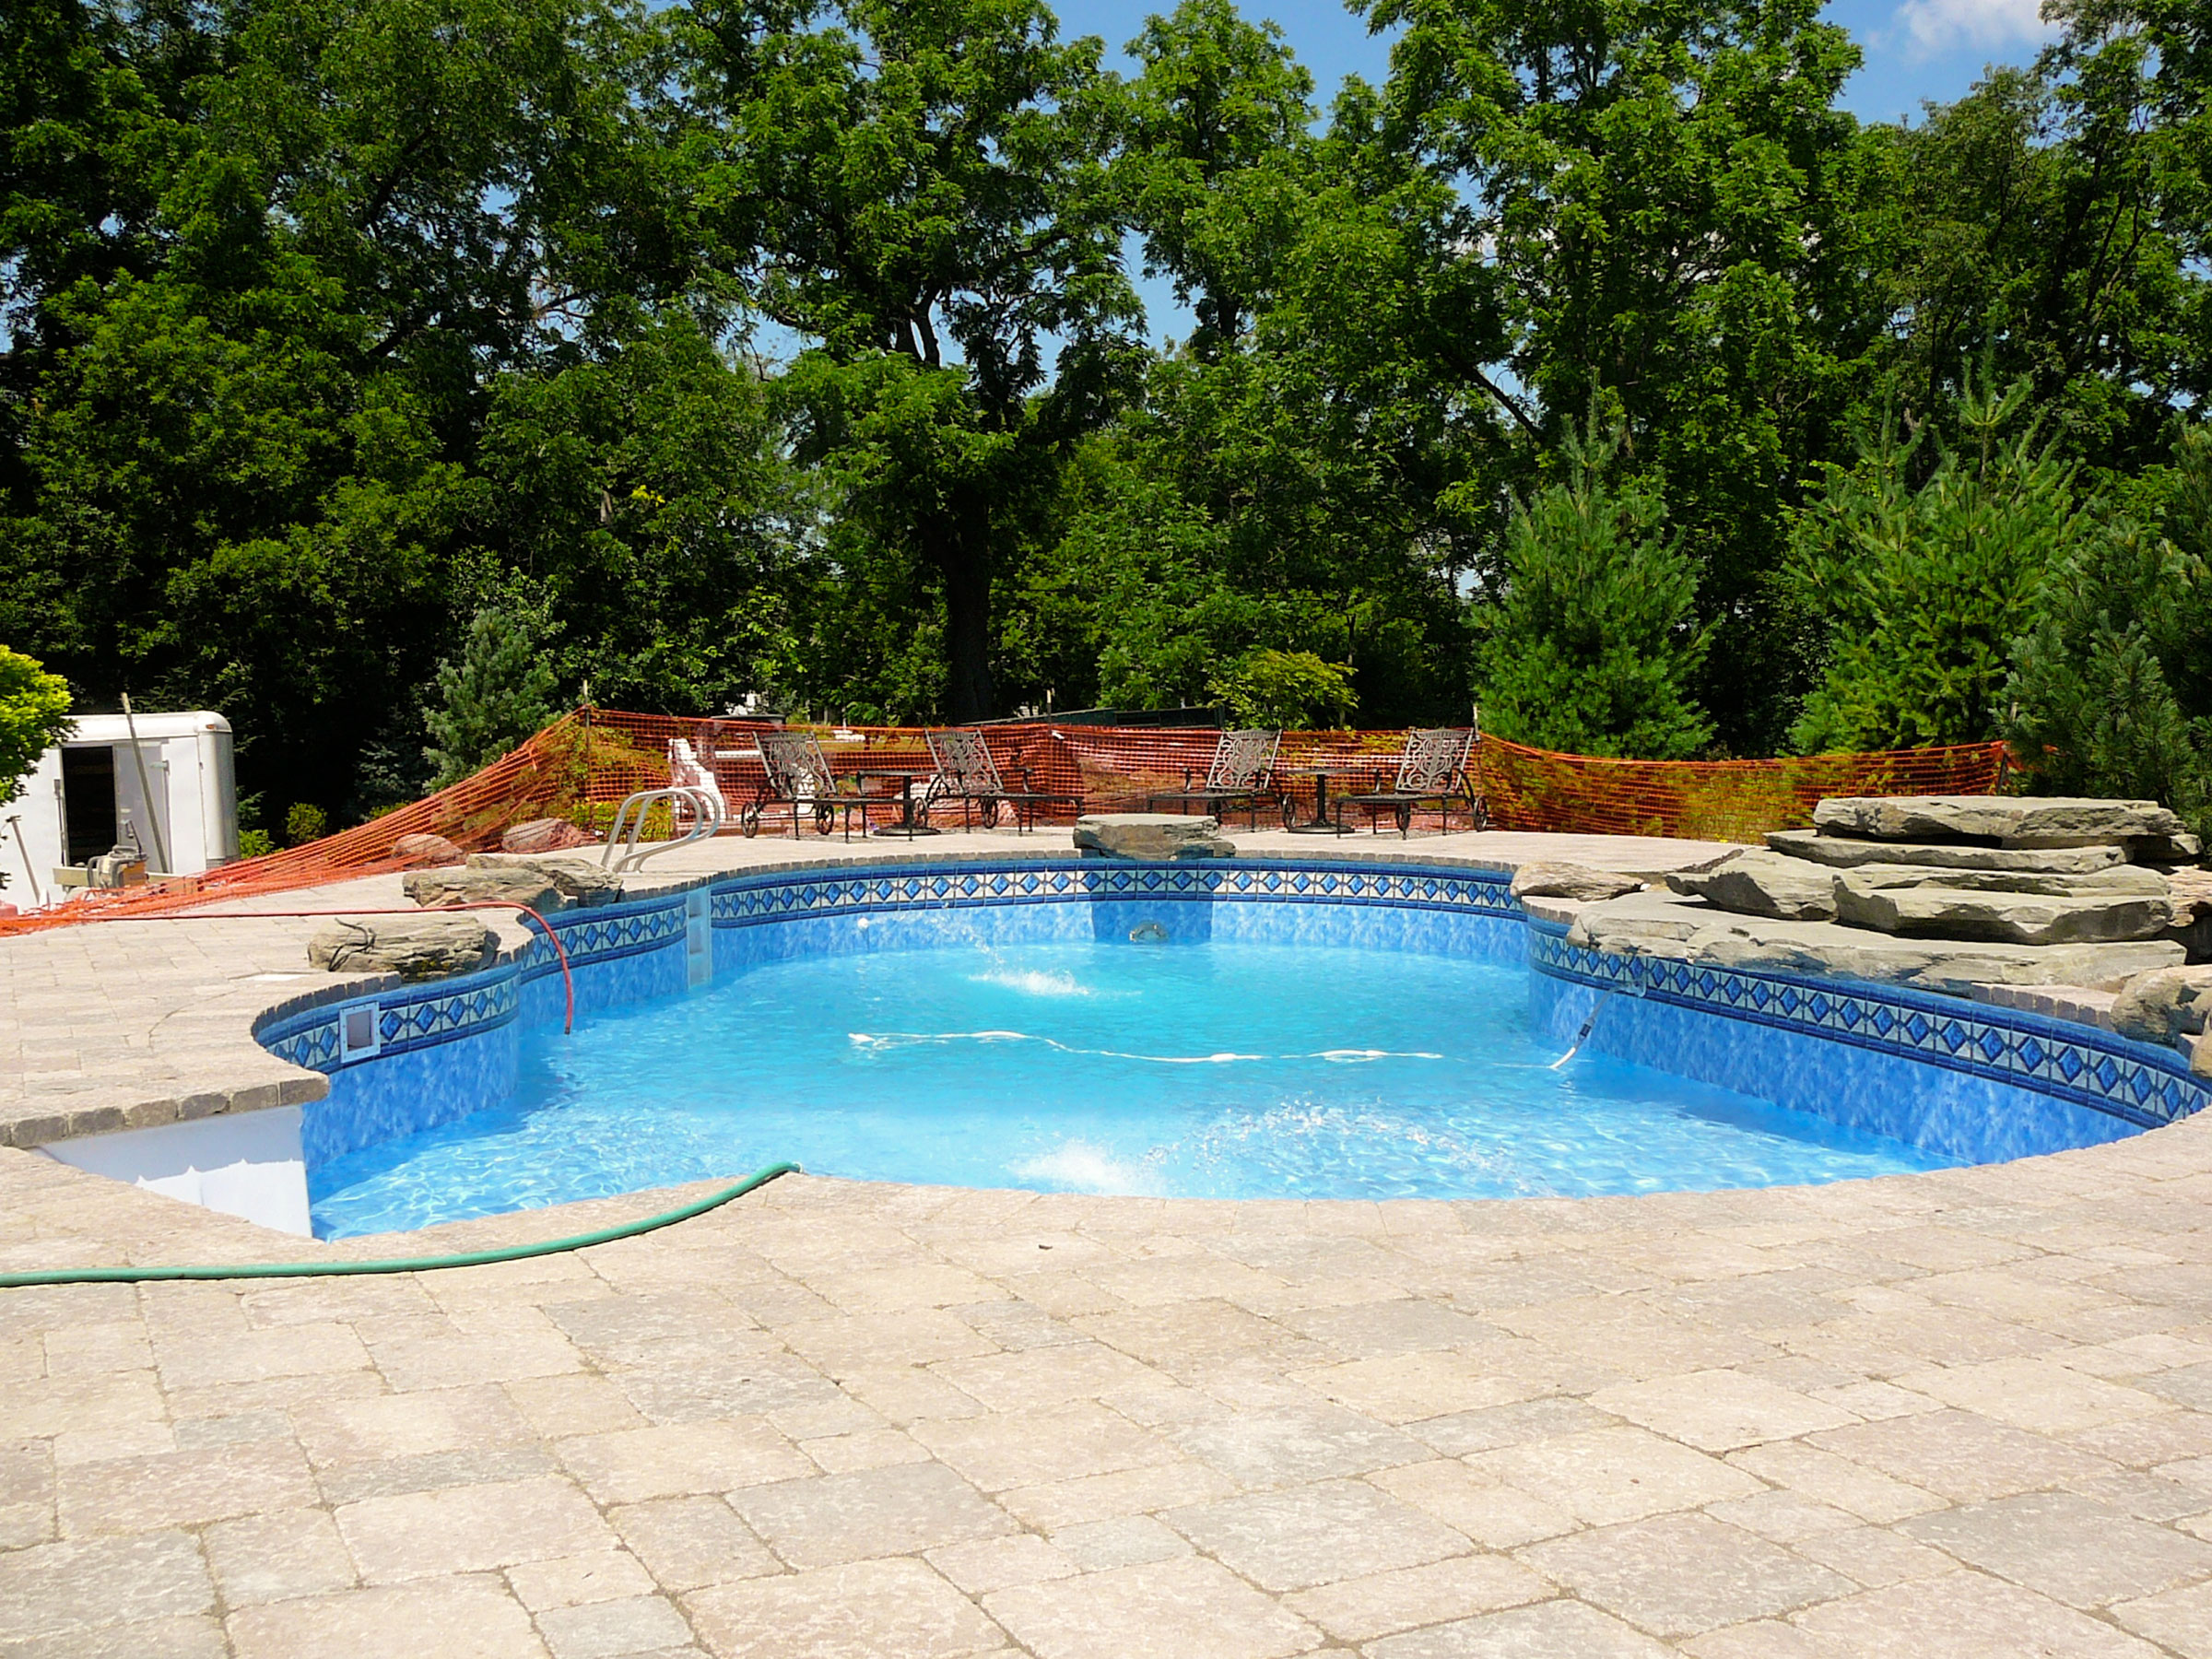 Completion of paver stone patio and bluestone waterfall and diving rock